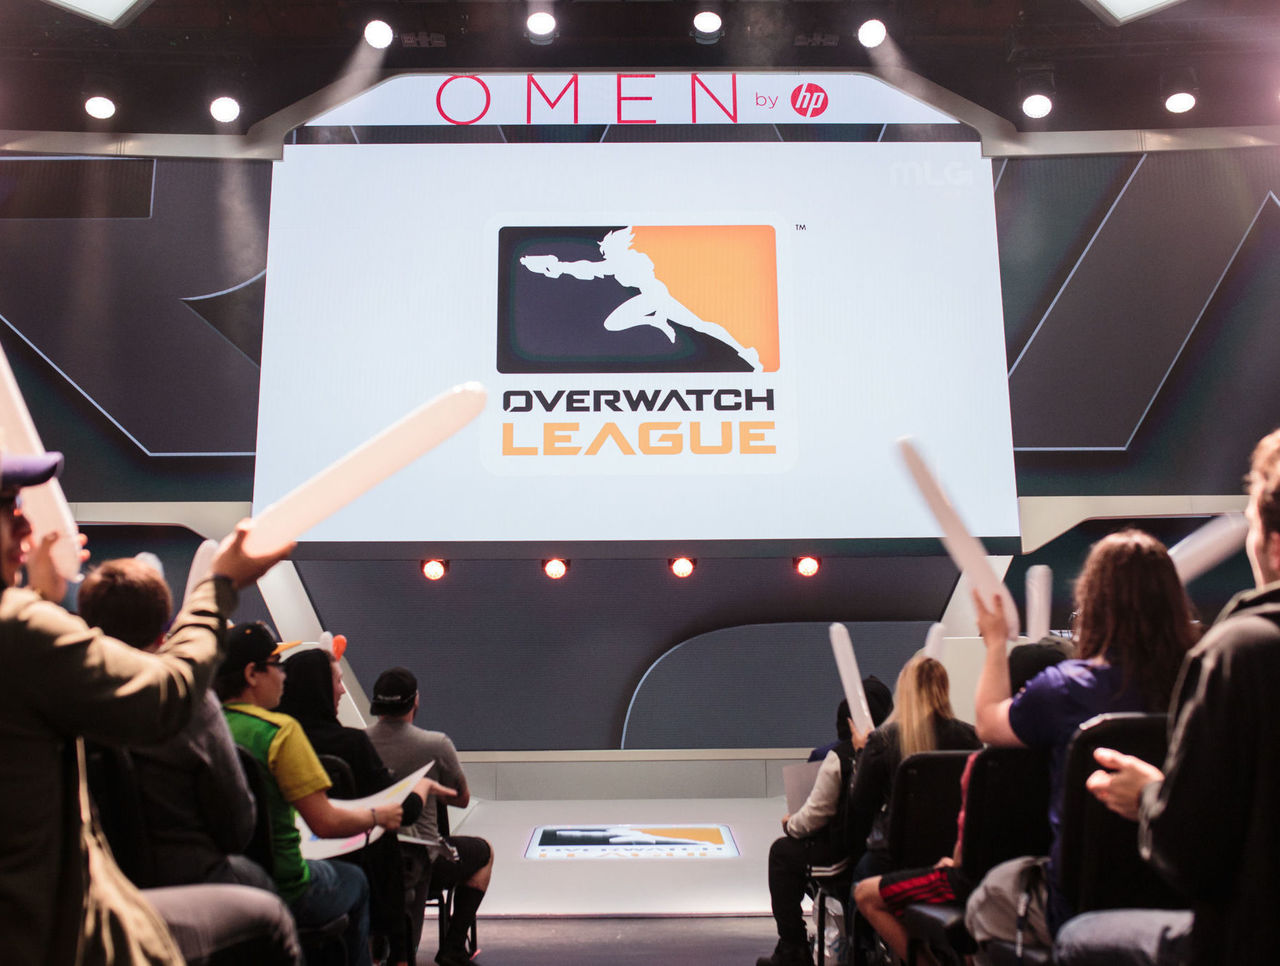 Cropped overwatch league and omen by hp logo